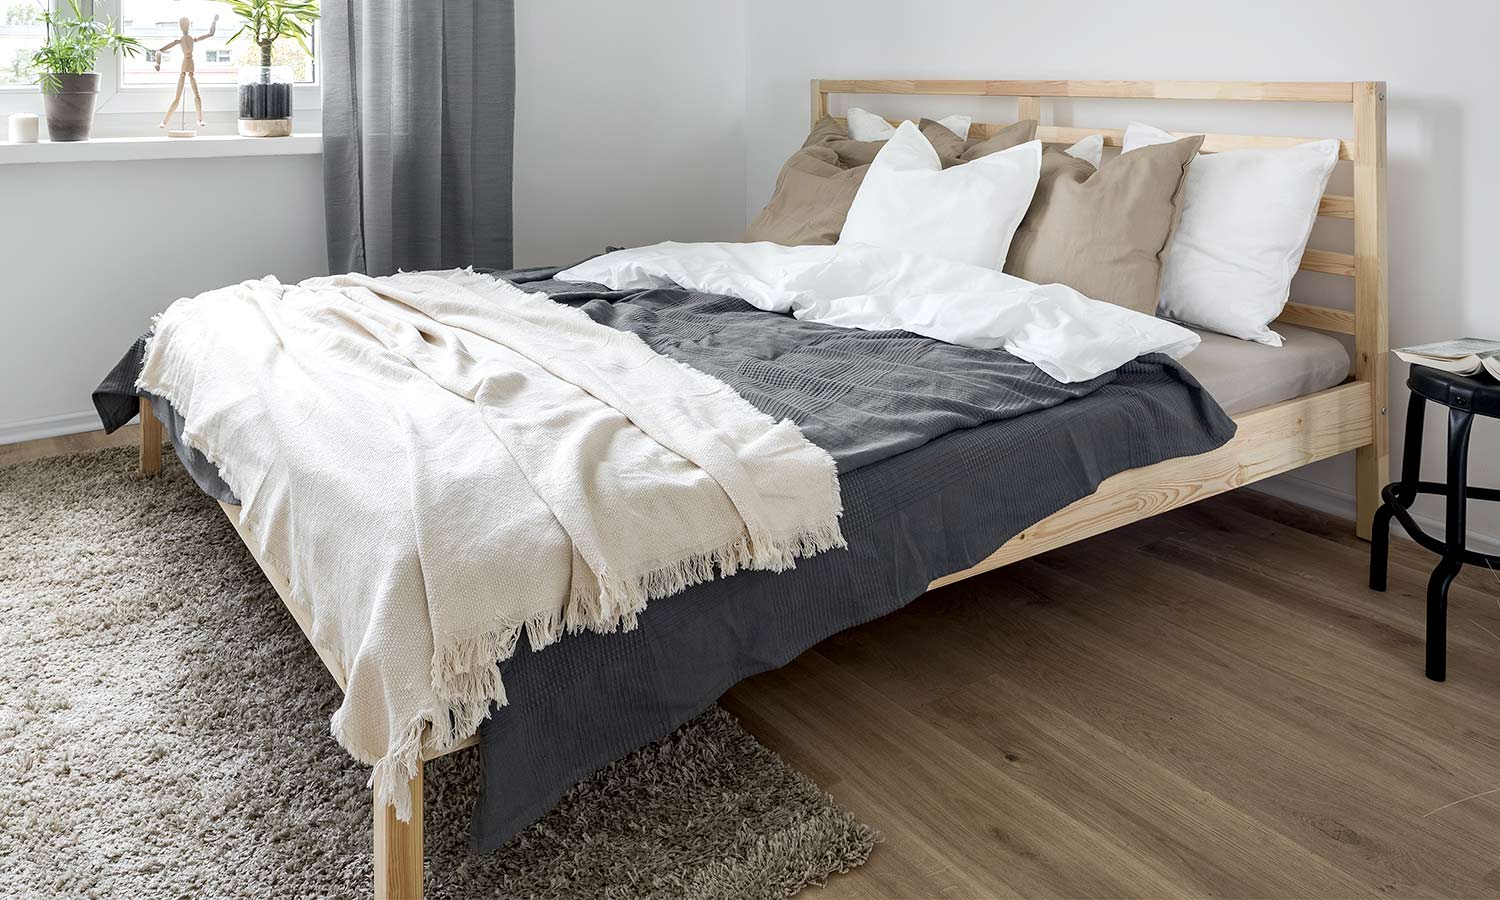 A light-colored wooden frame with a thin and simplistic headboard.